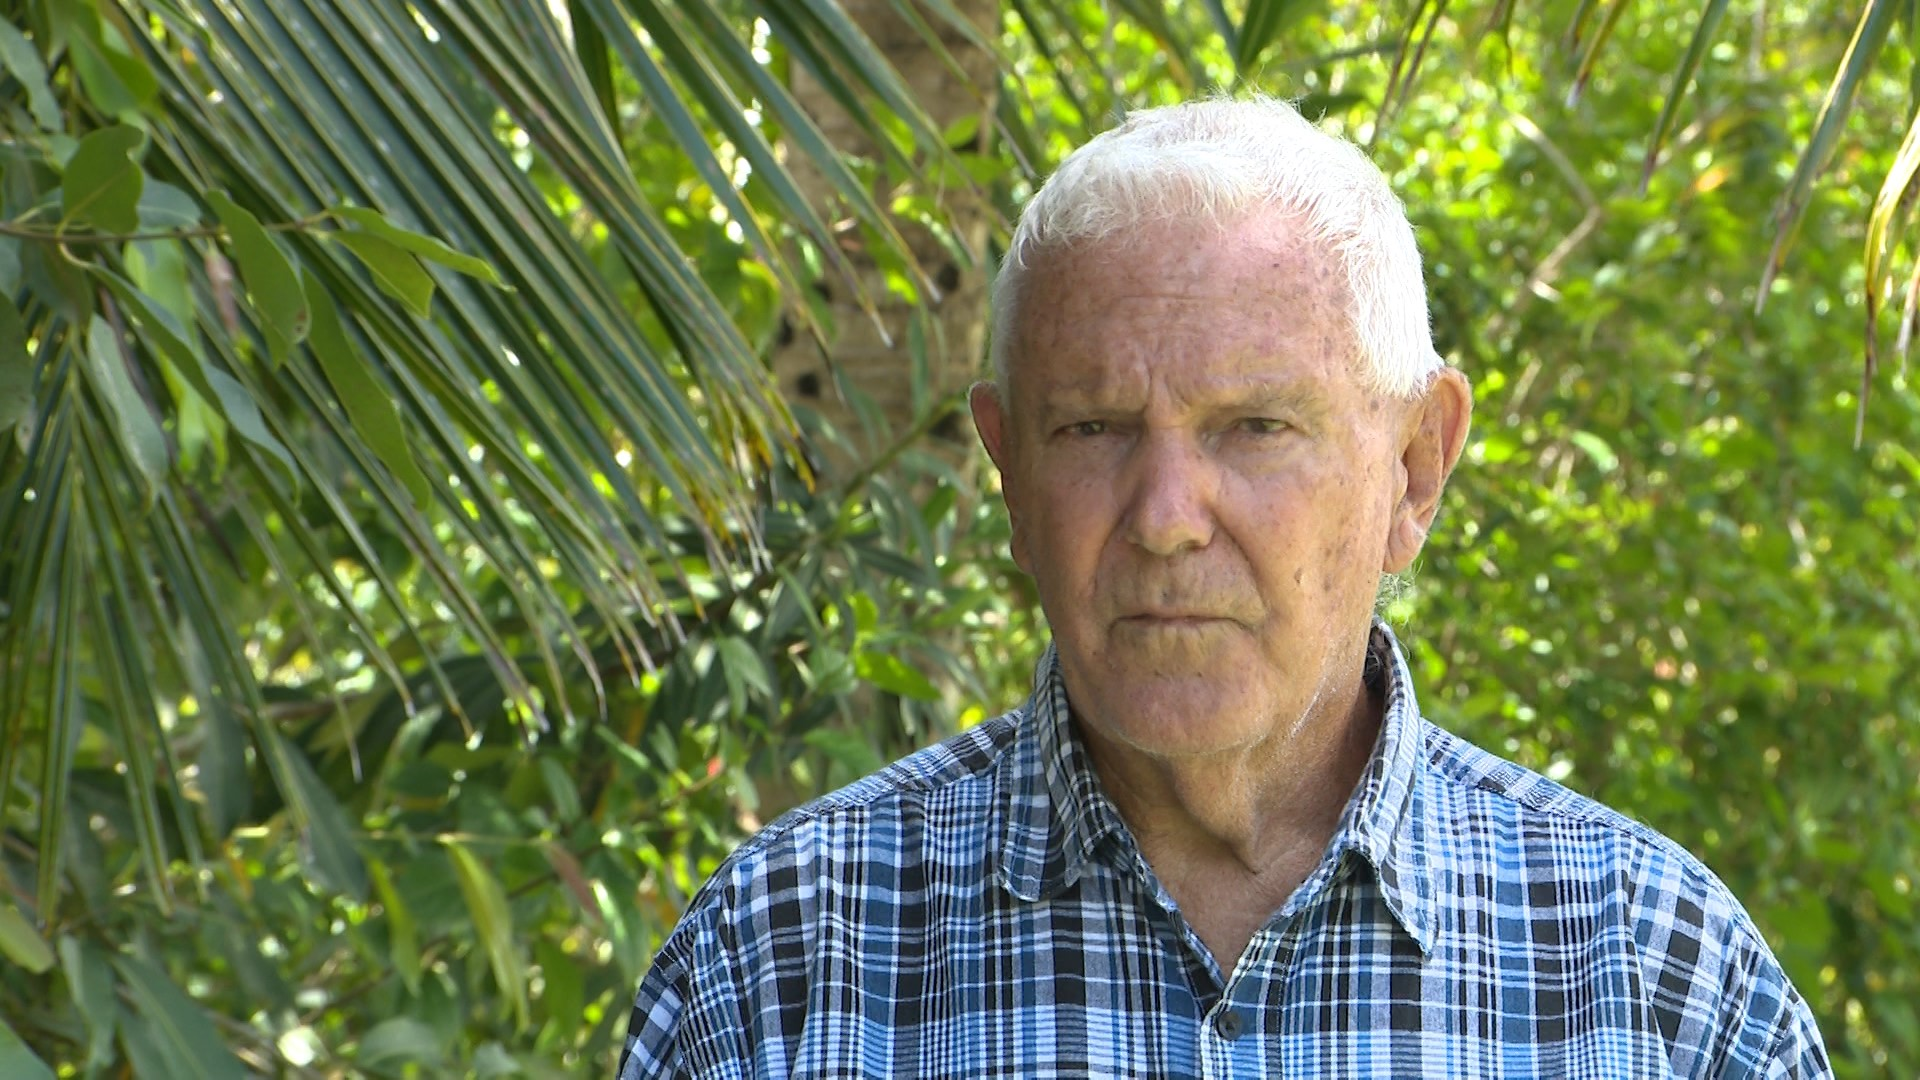 Opposition MP Terry Coe is calling on youths to contest next year's election.Coe says Parliament needs new blood and there are capable young people who have leadership qualities.As part of…